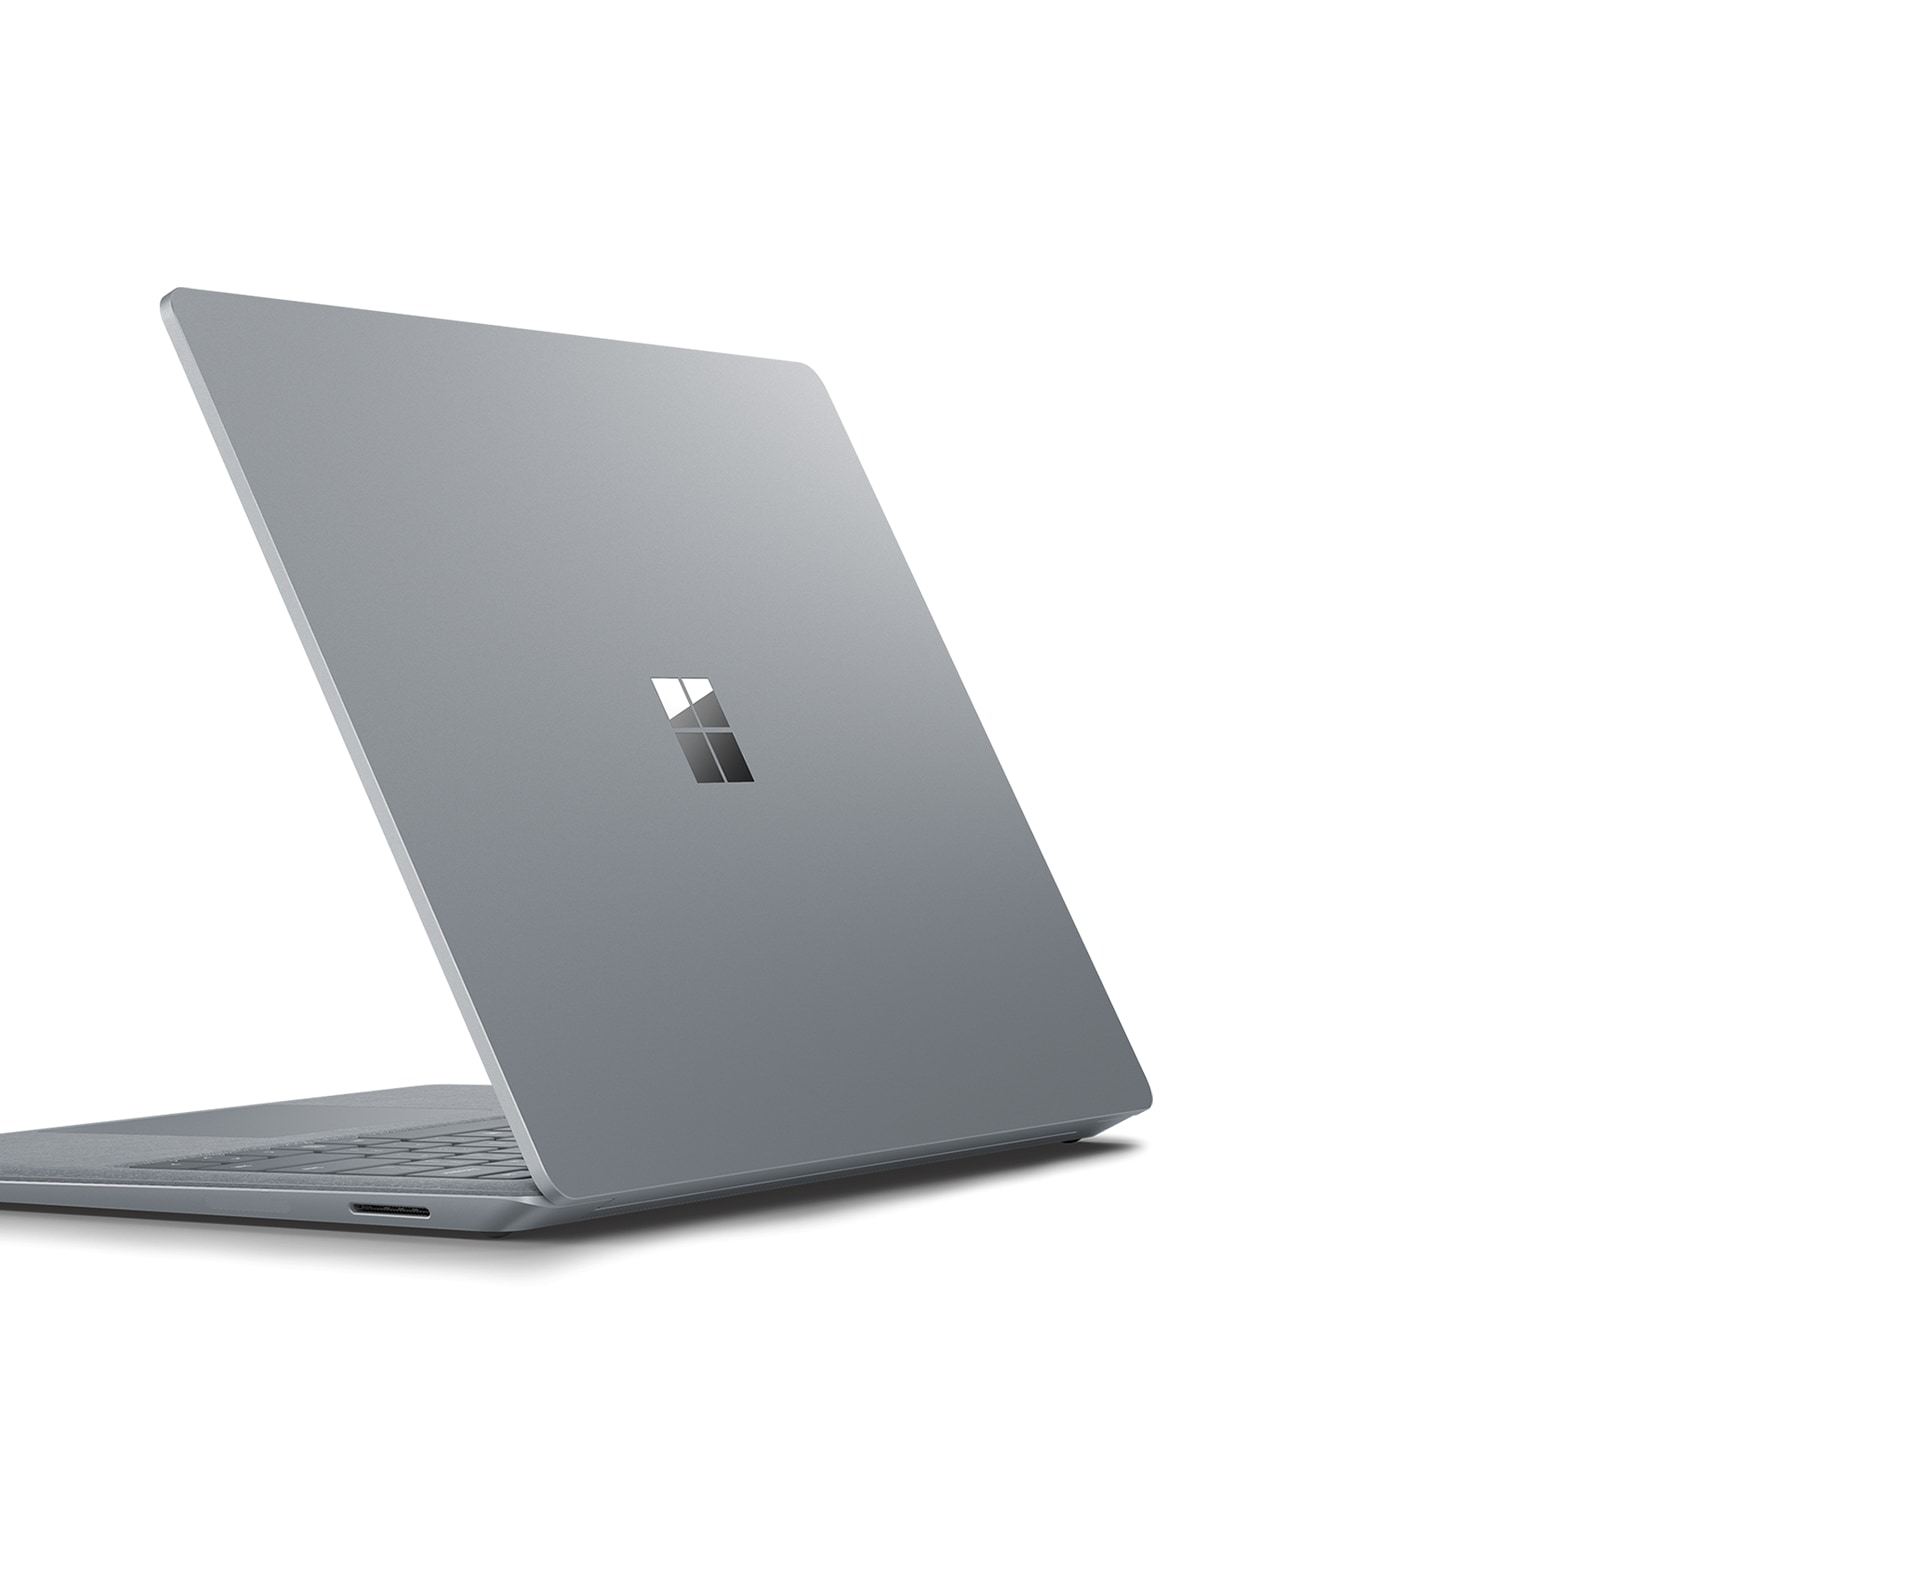 Surface Laptop 2 left-rear angle view